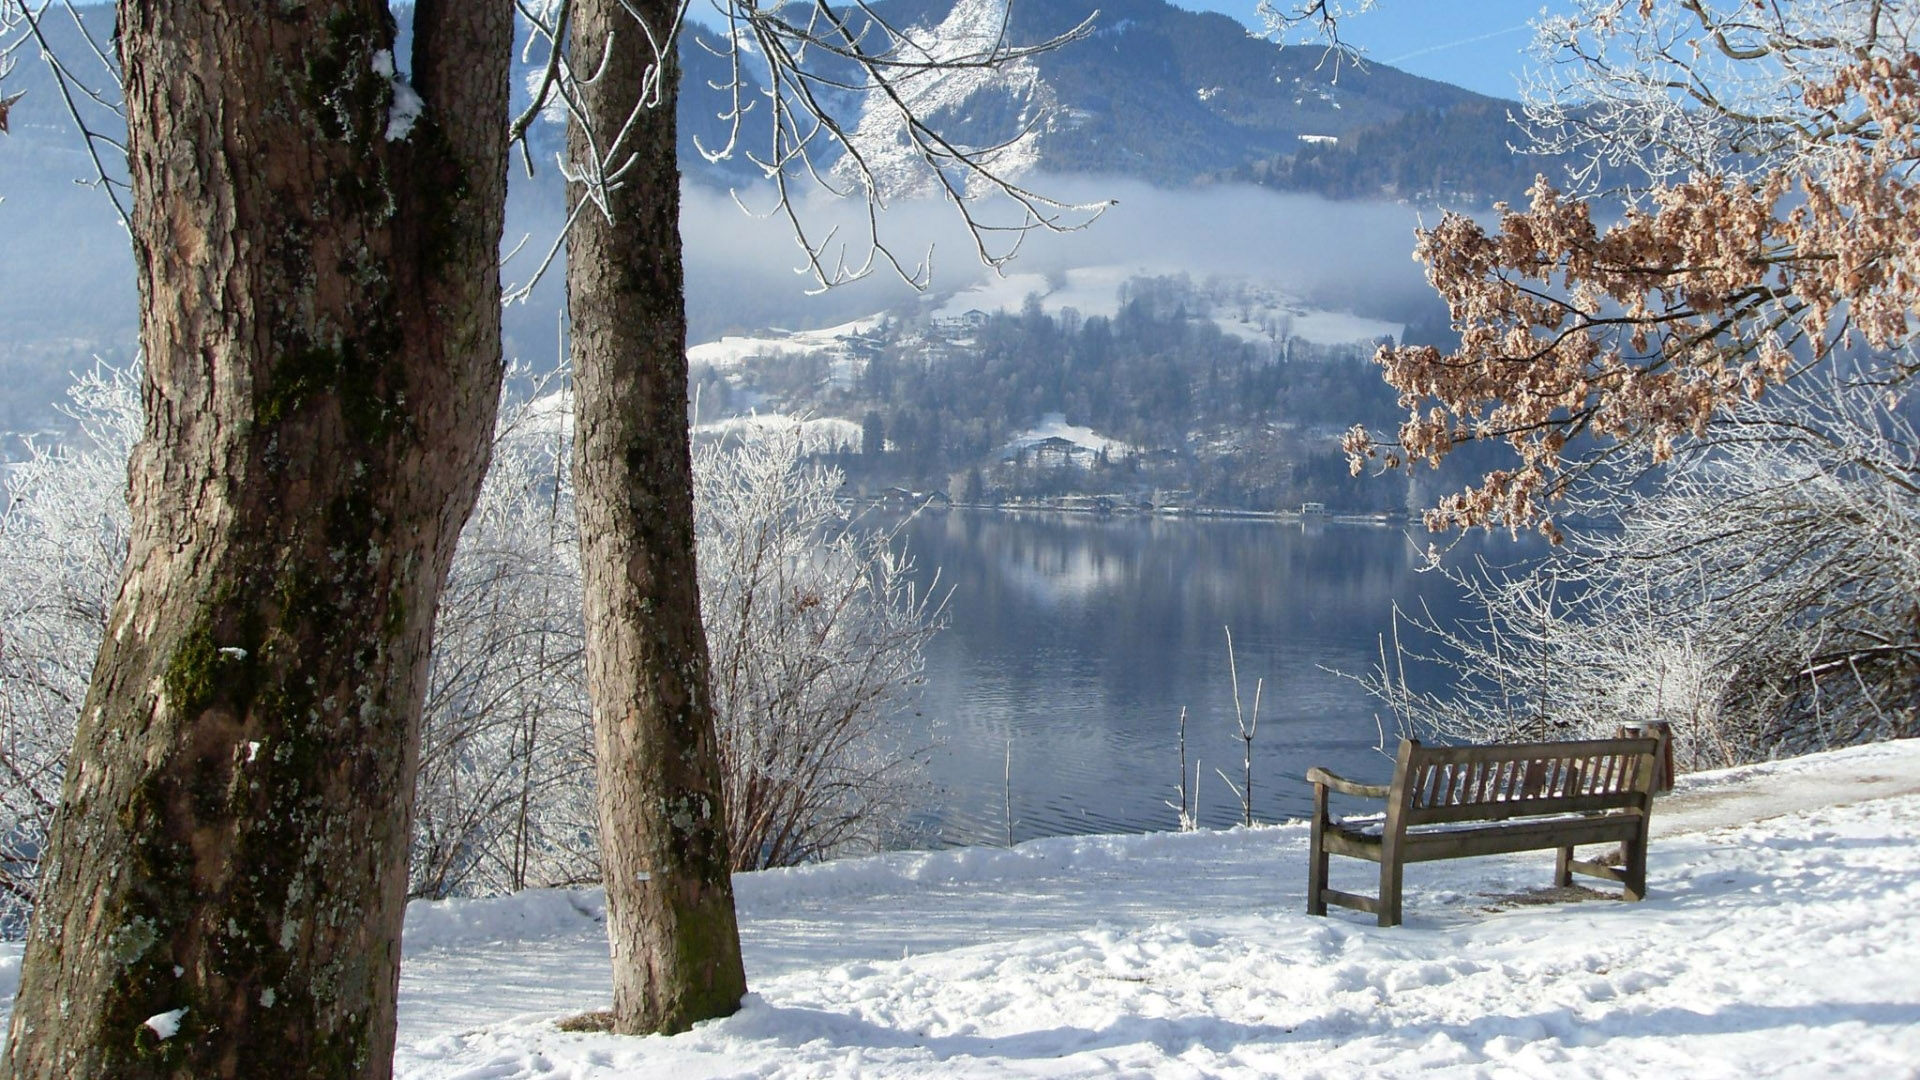 Free Download Nature Winter Wallpapers Hd 1920x1080 For Your